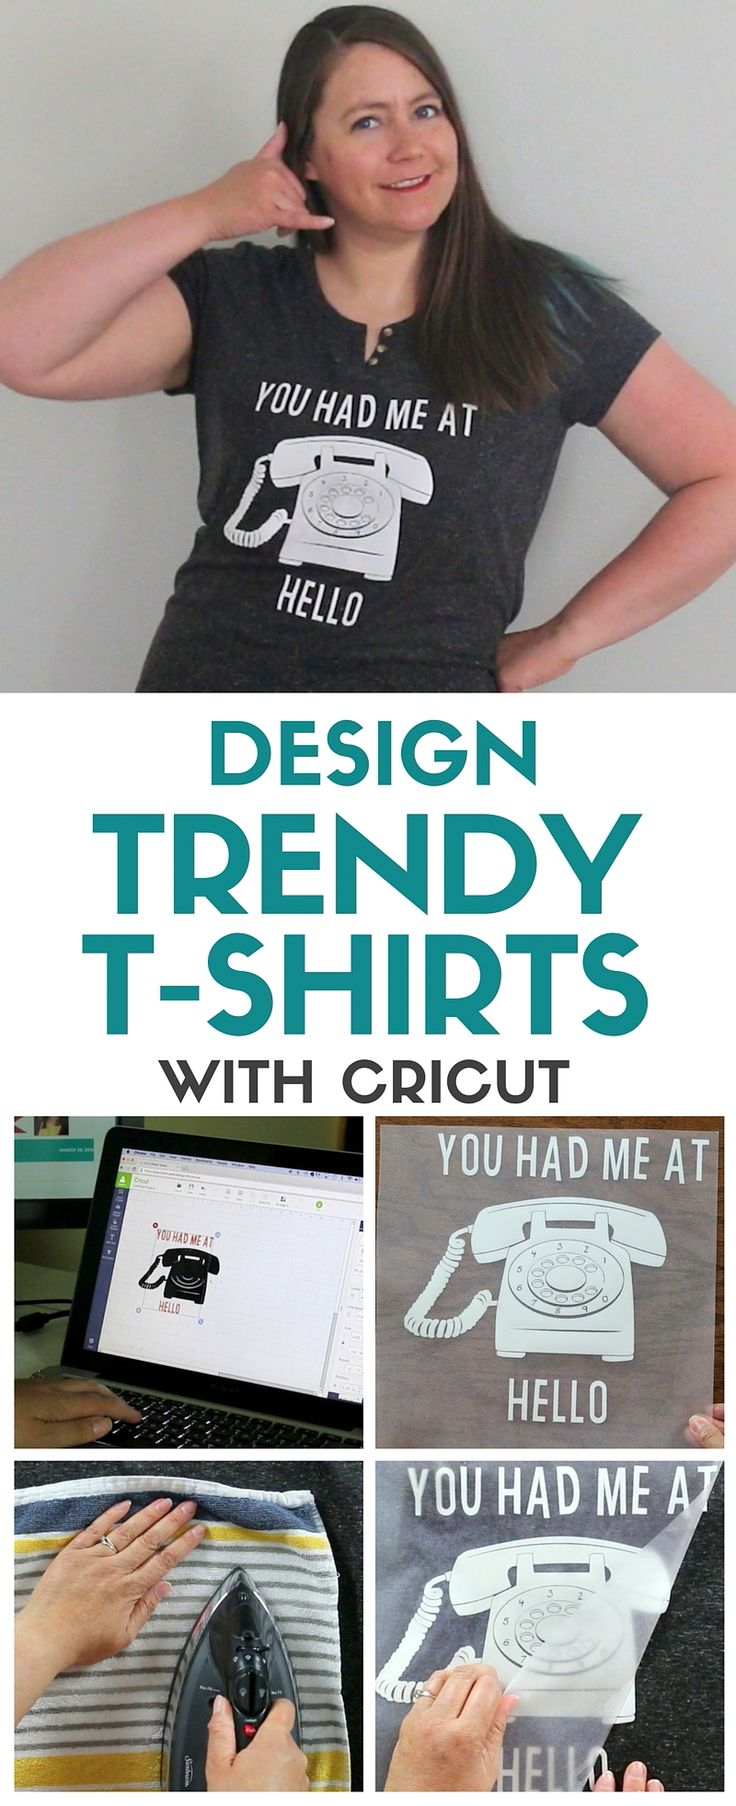 How To Design Trendy T Shirts With Cricut Diy T Shirt Ideas With